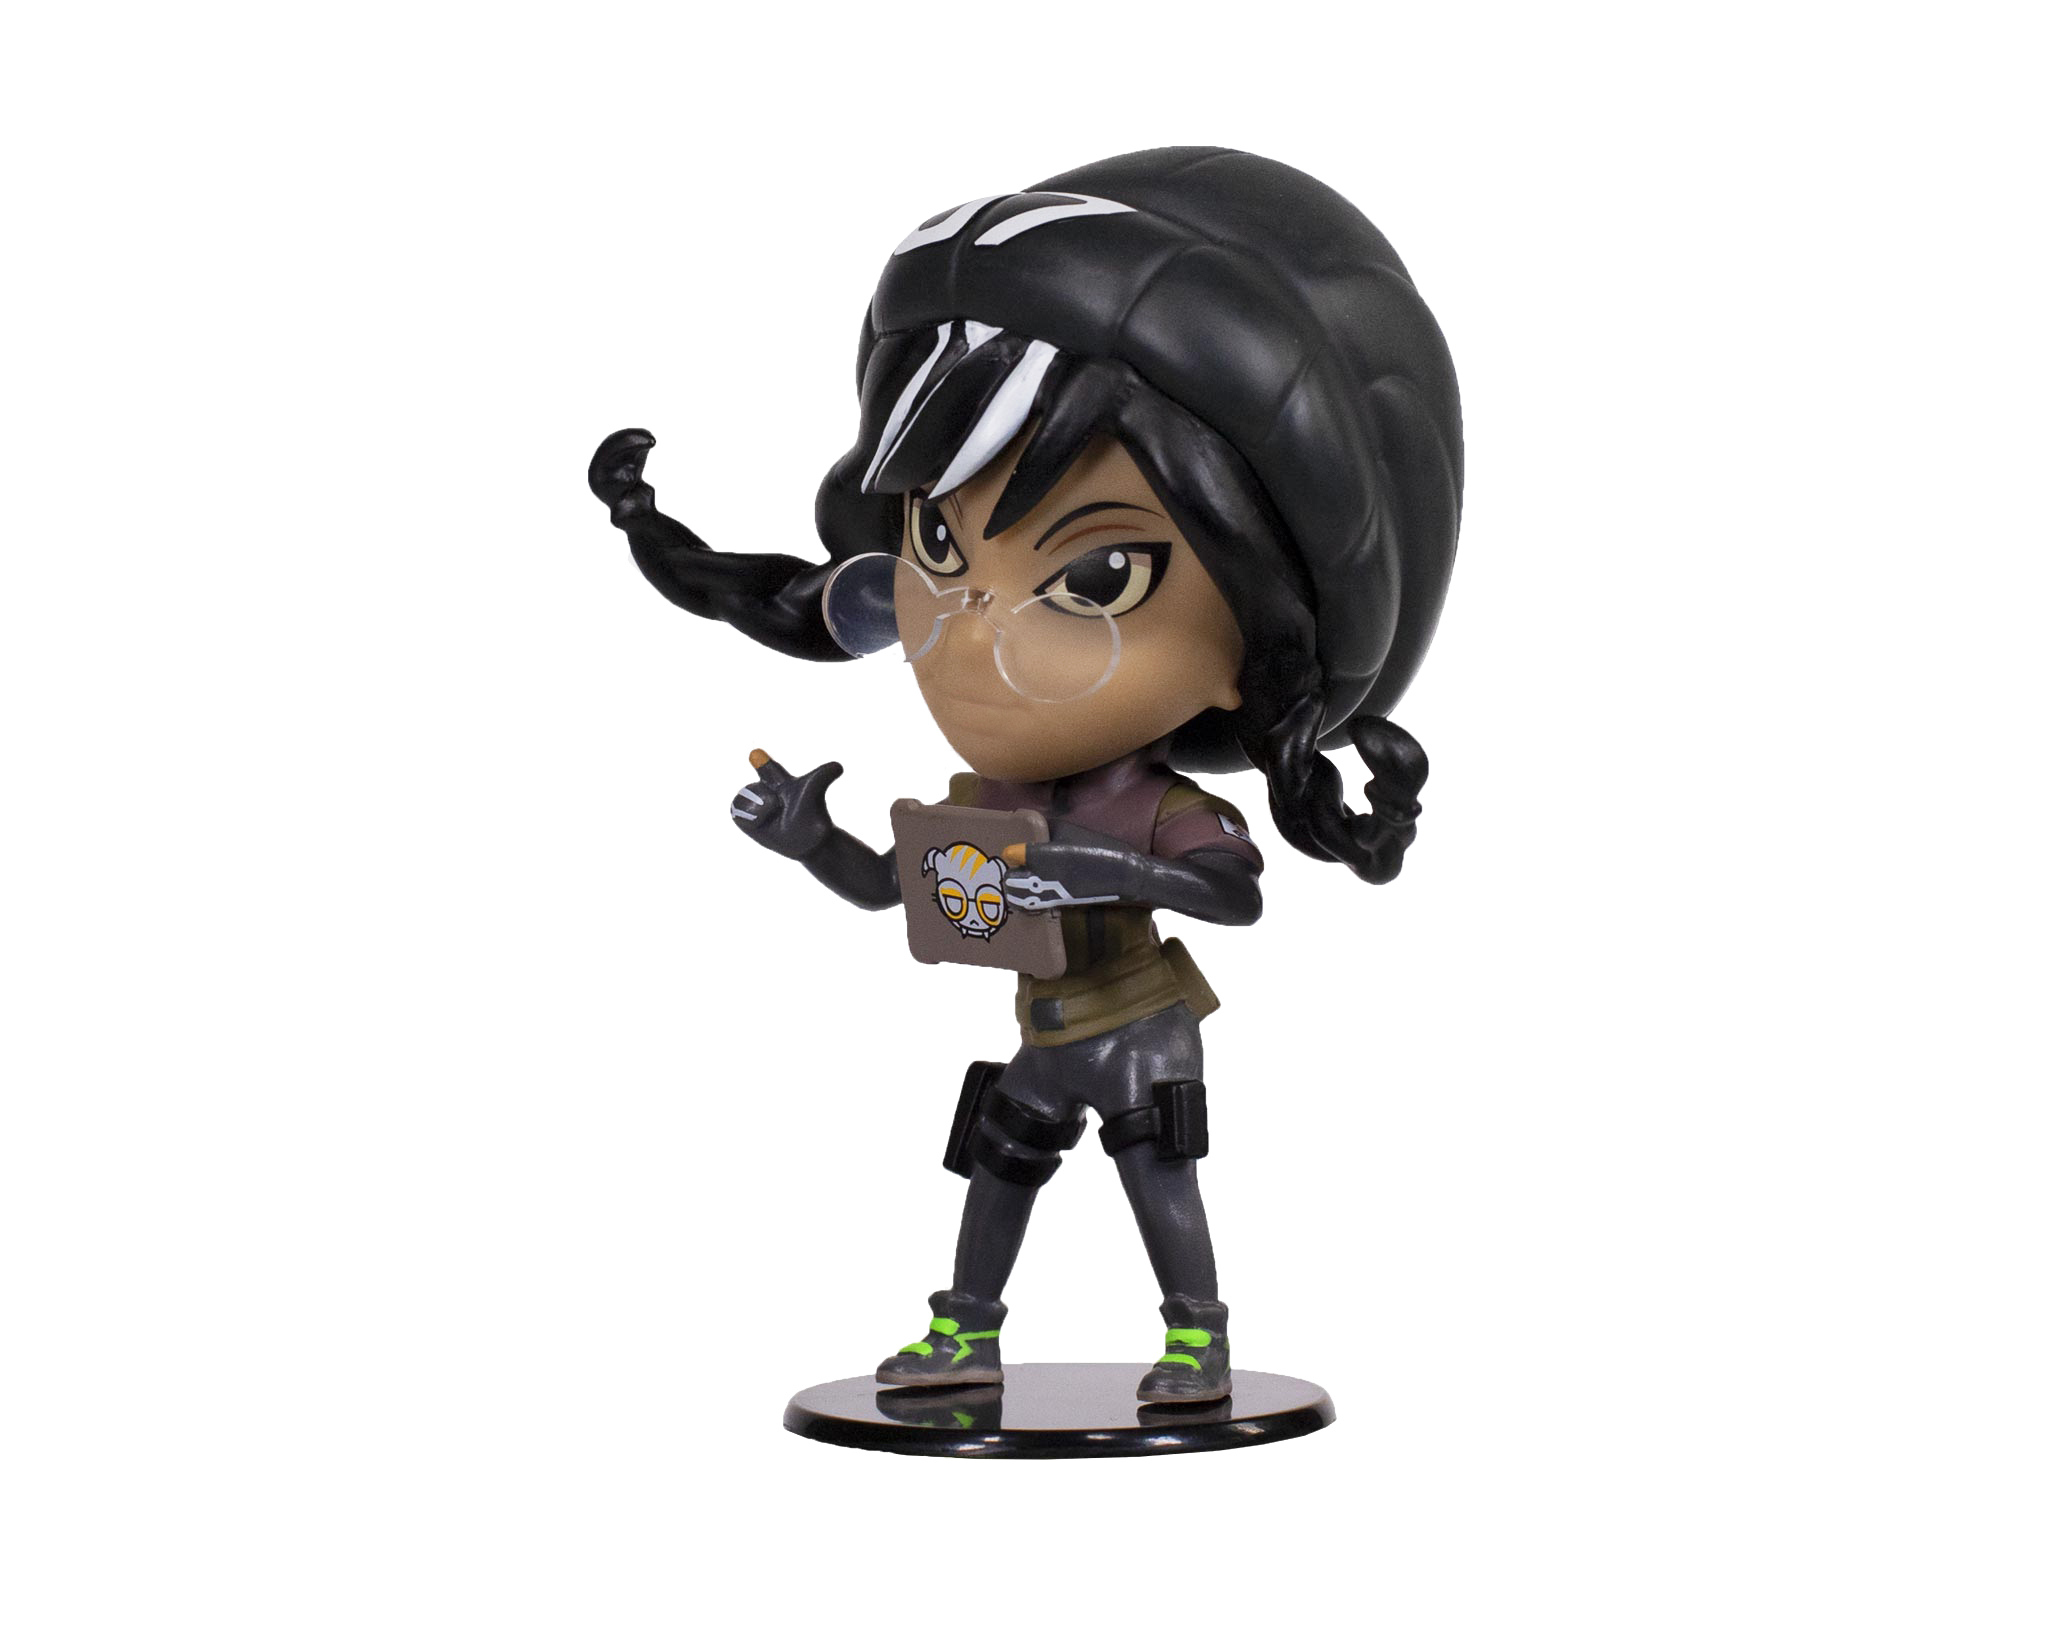 Dokkaebi Chibi Figurine Six Collection Ubisoft Store